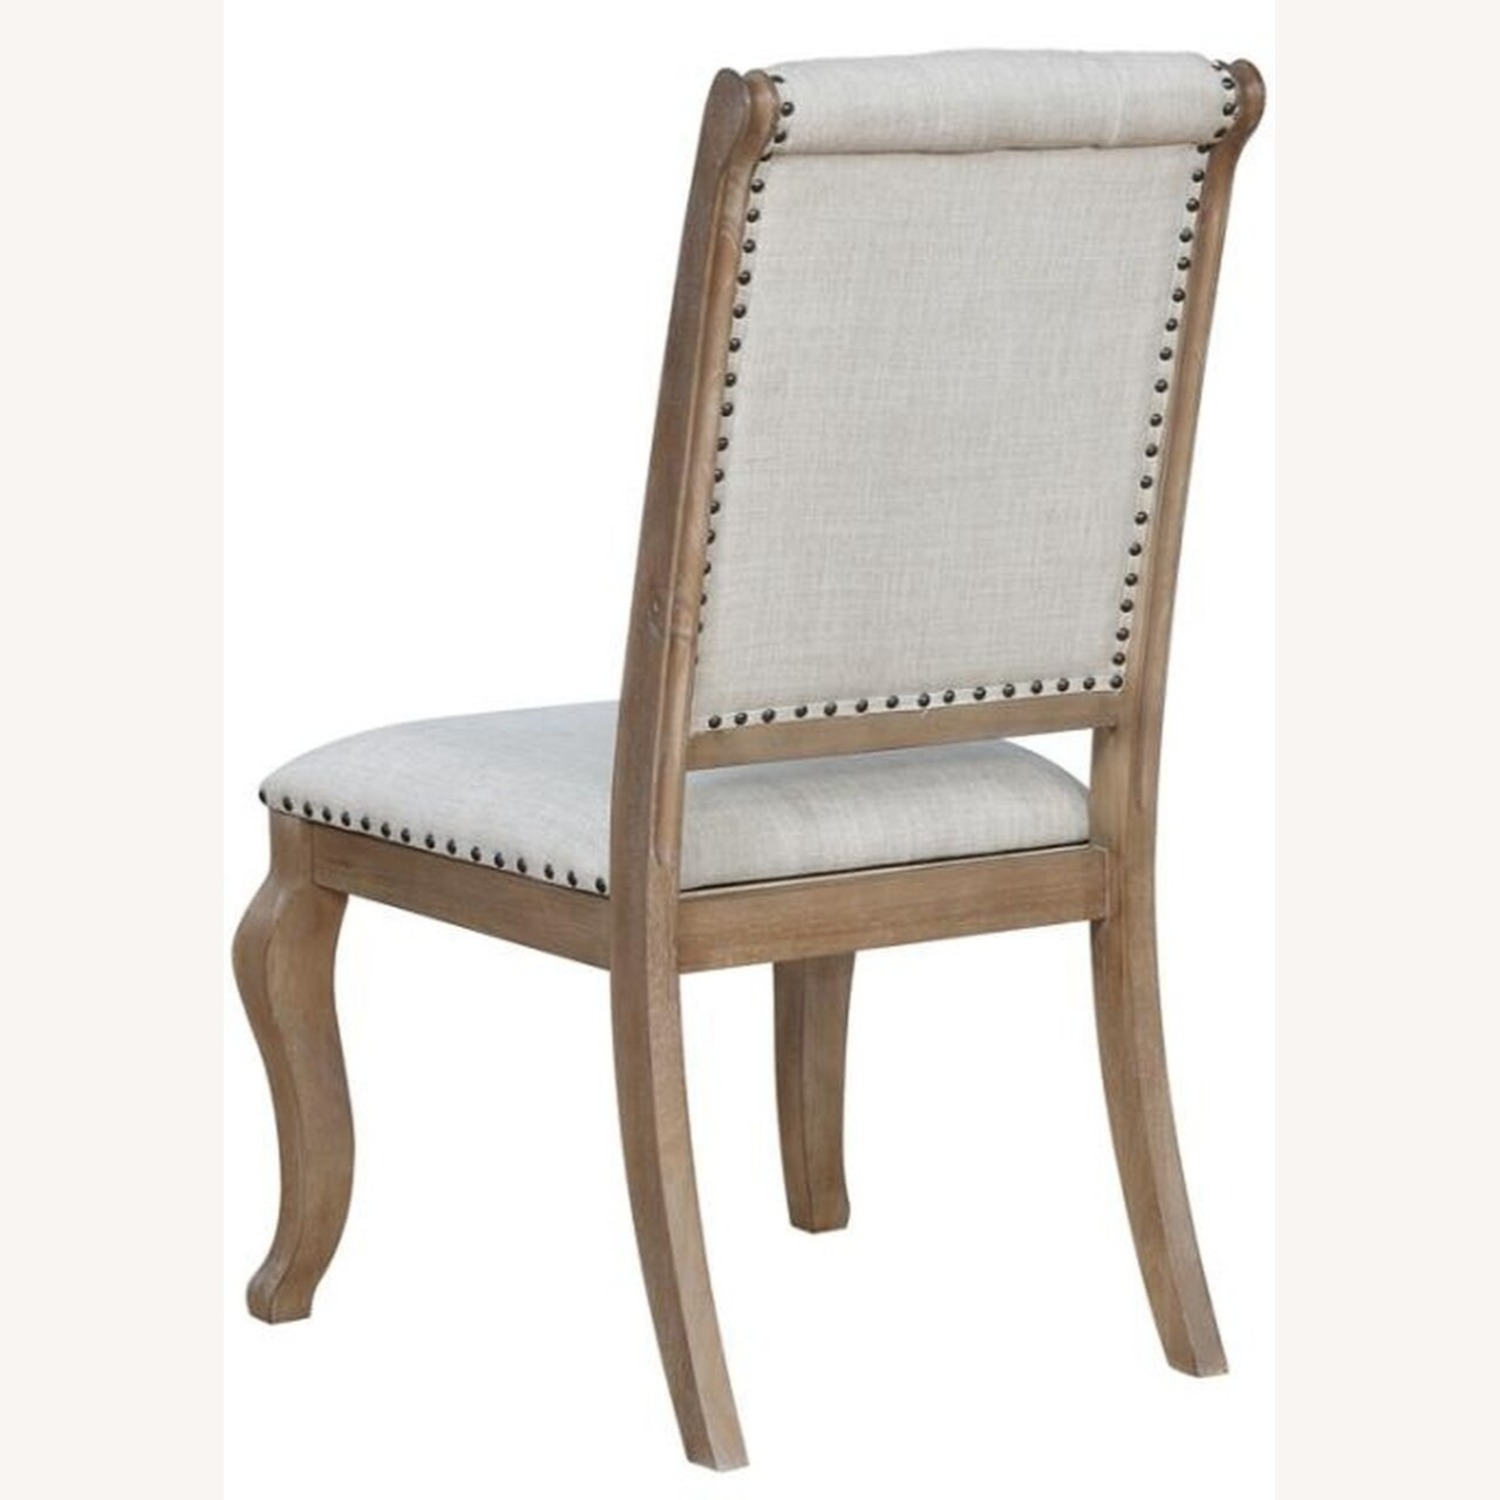 Side Chair In Barley Brown Finish - image-1